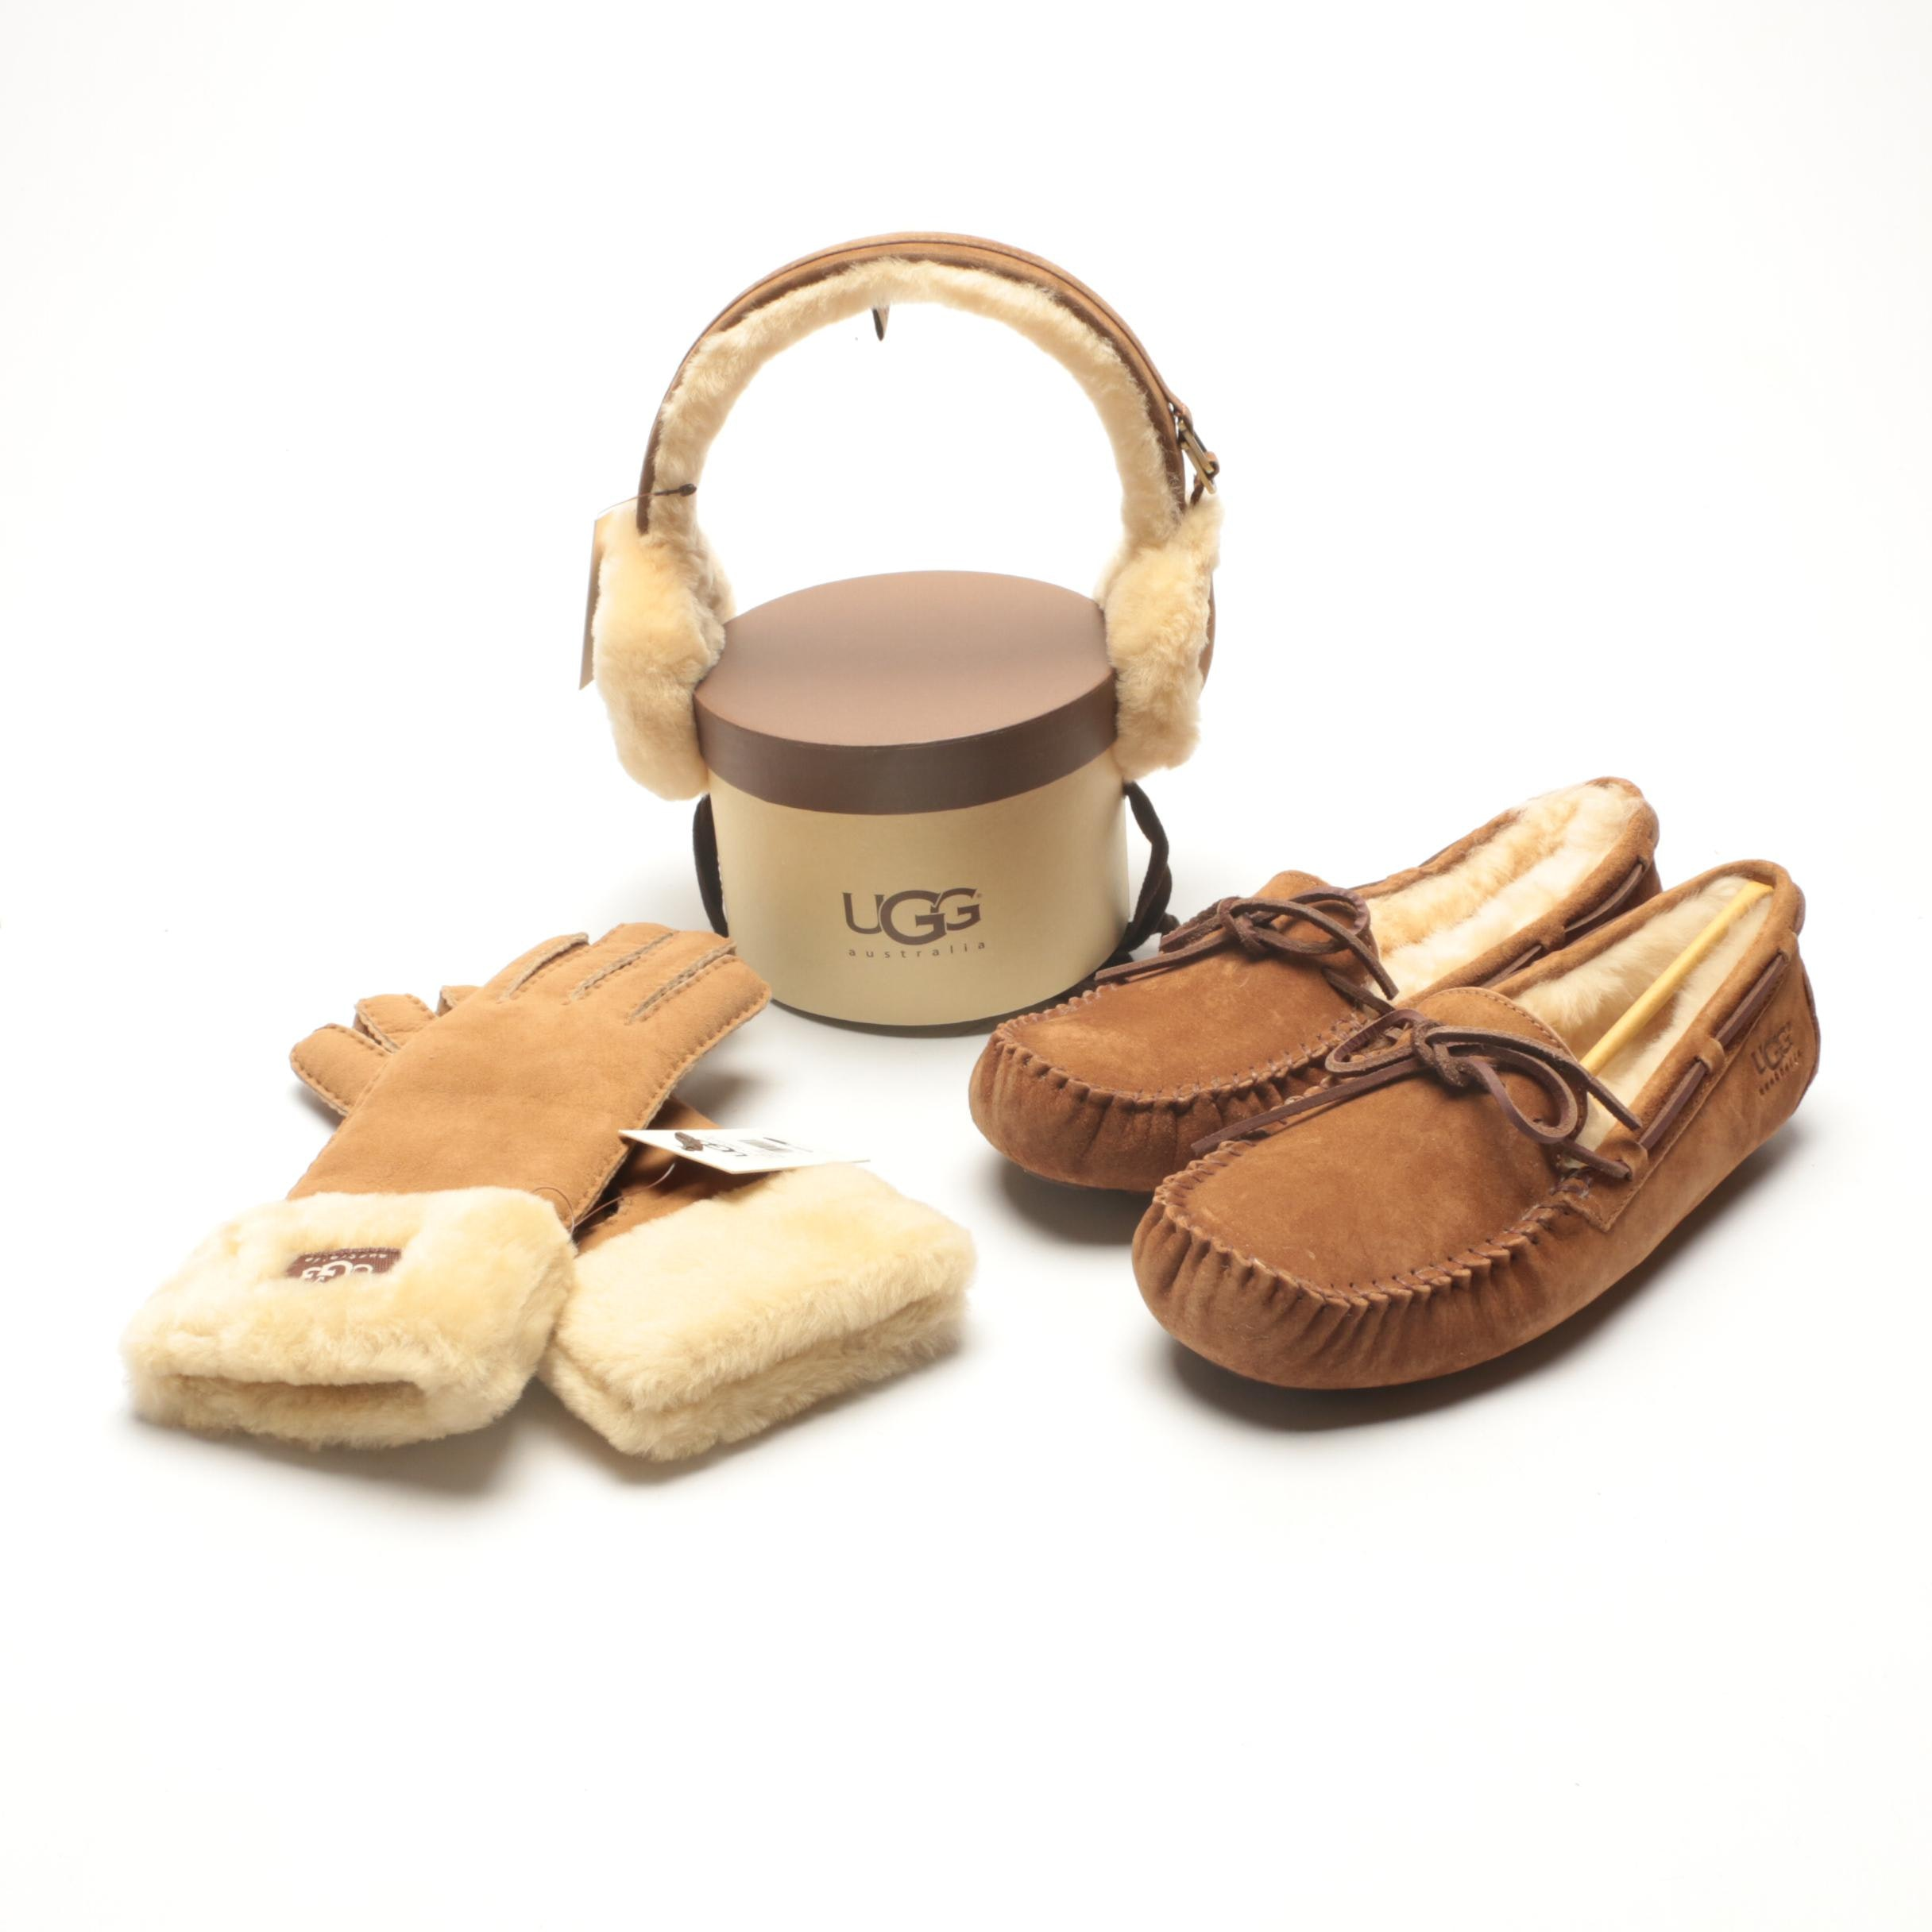 UGG Australia Slippers, Gloves and Earmuffs